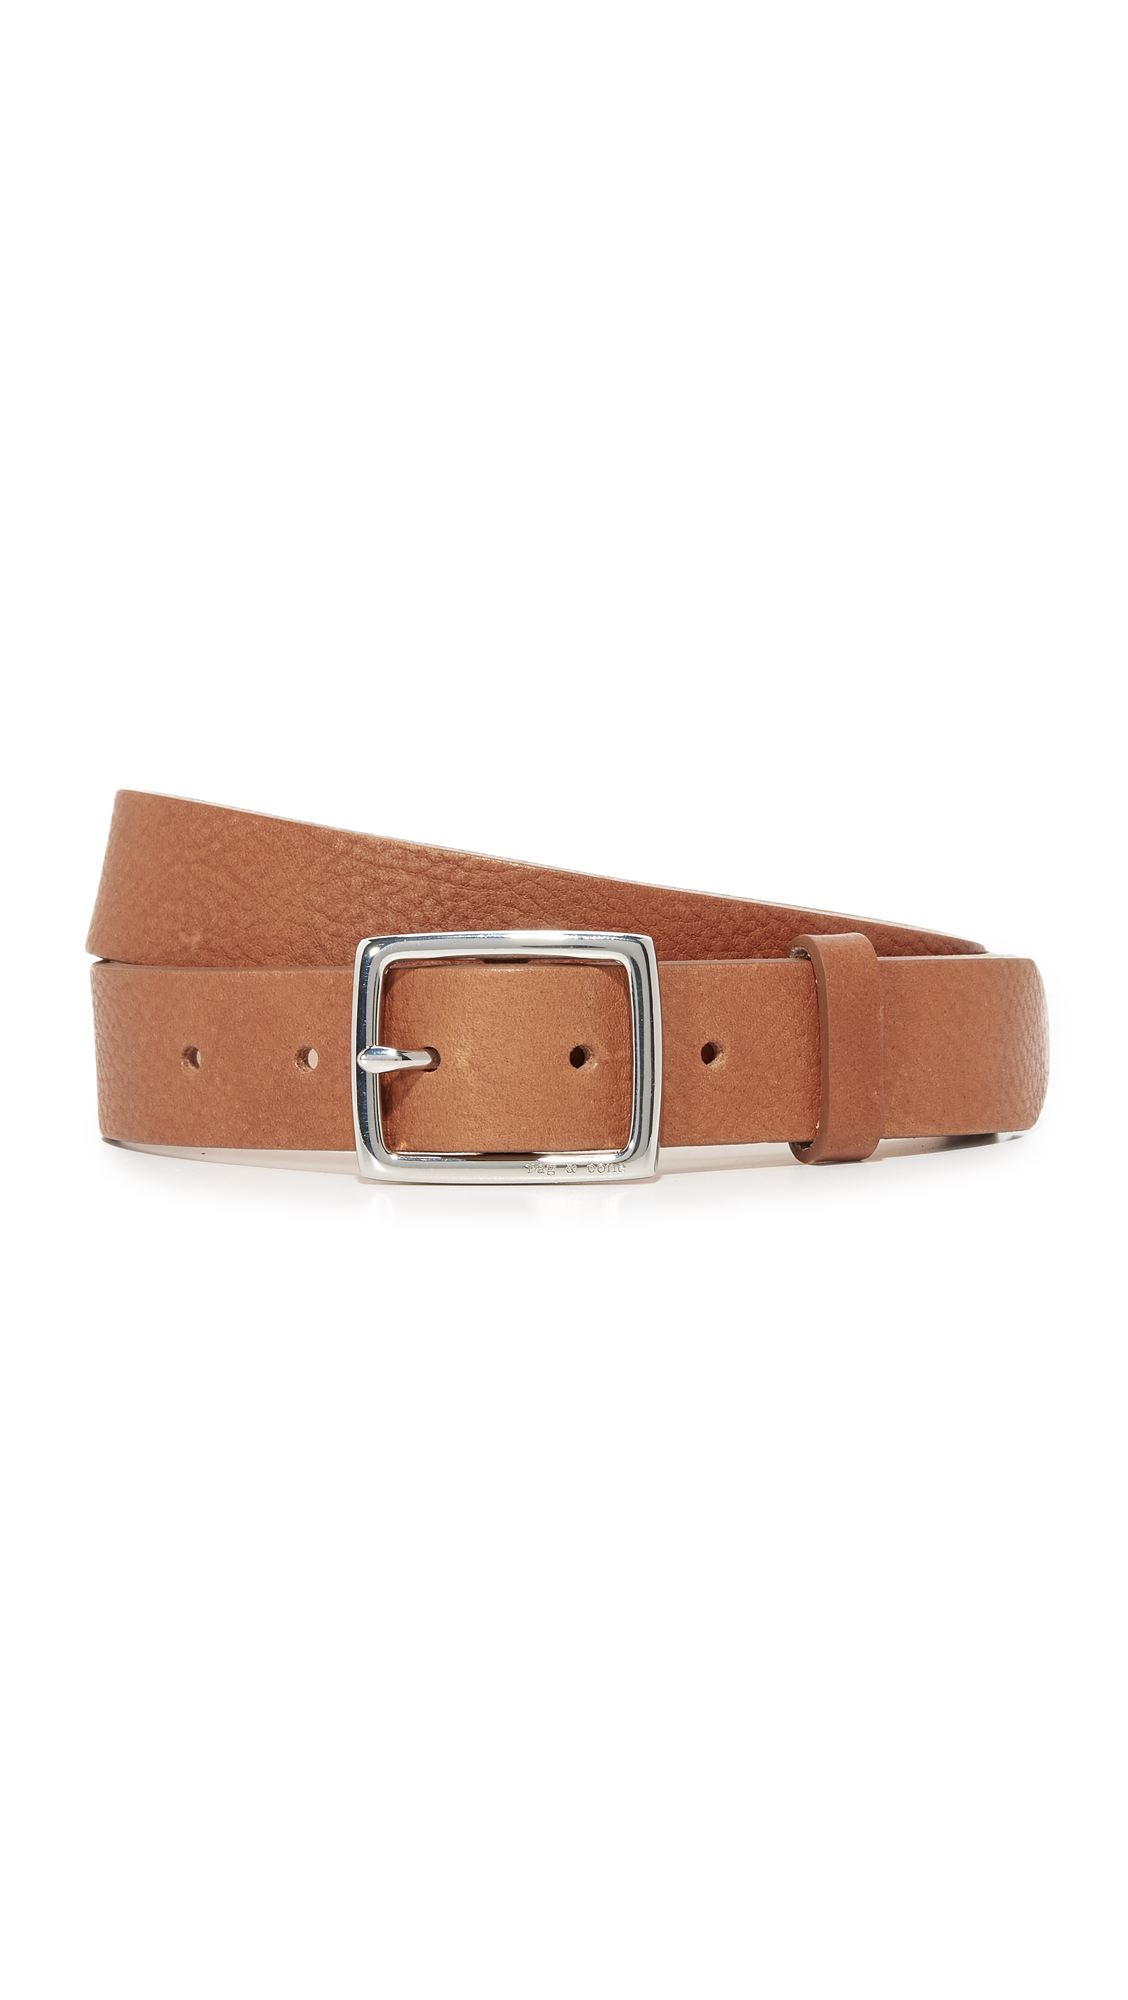 Rag & Bone Boyfriend Belt - Pebbled Tan